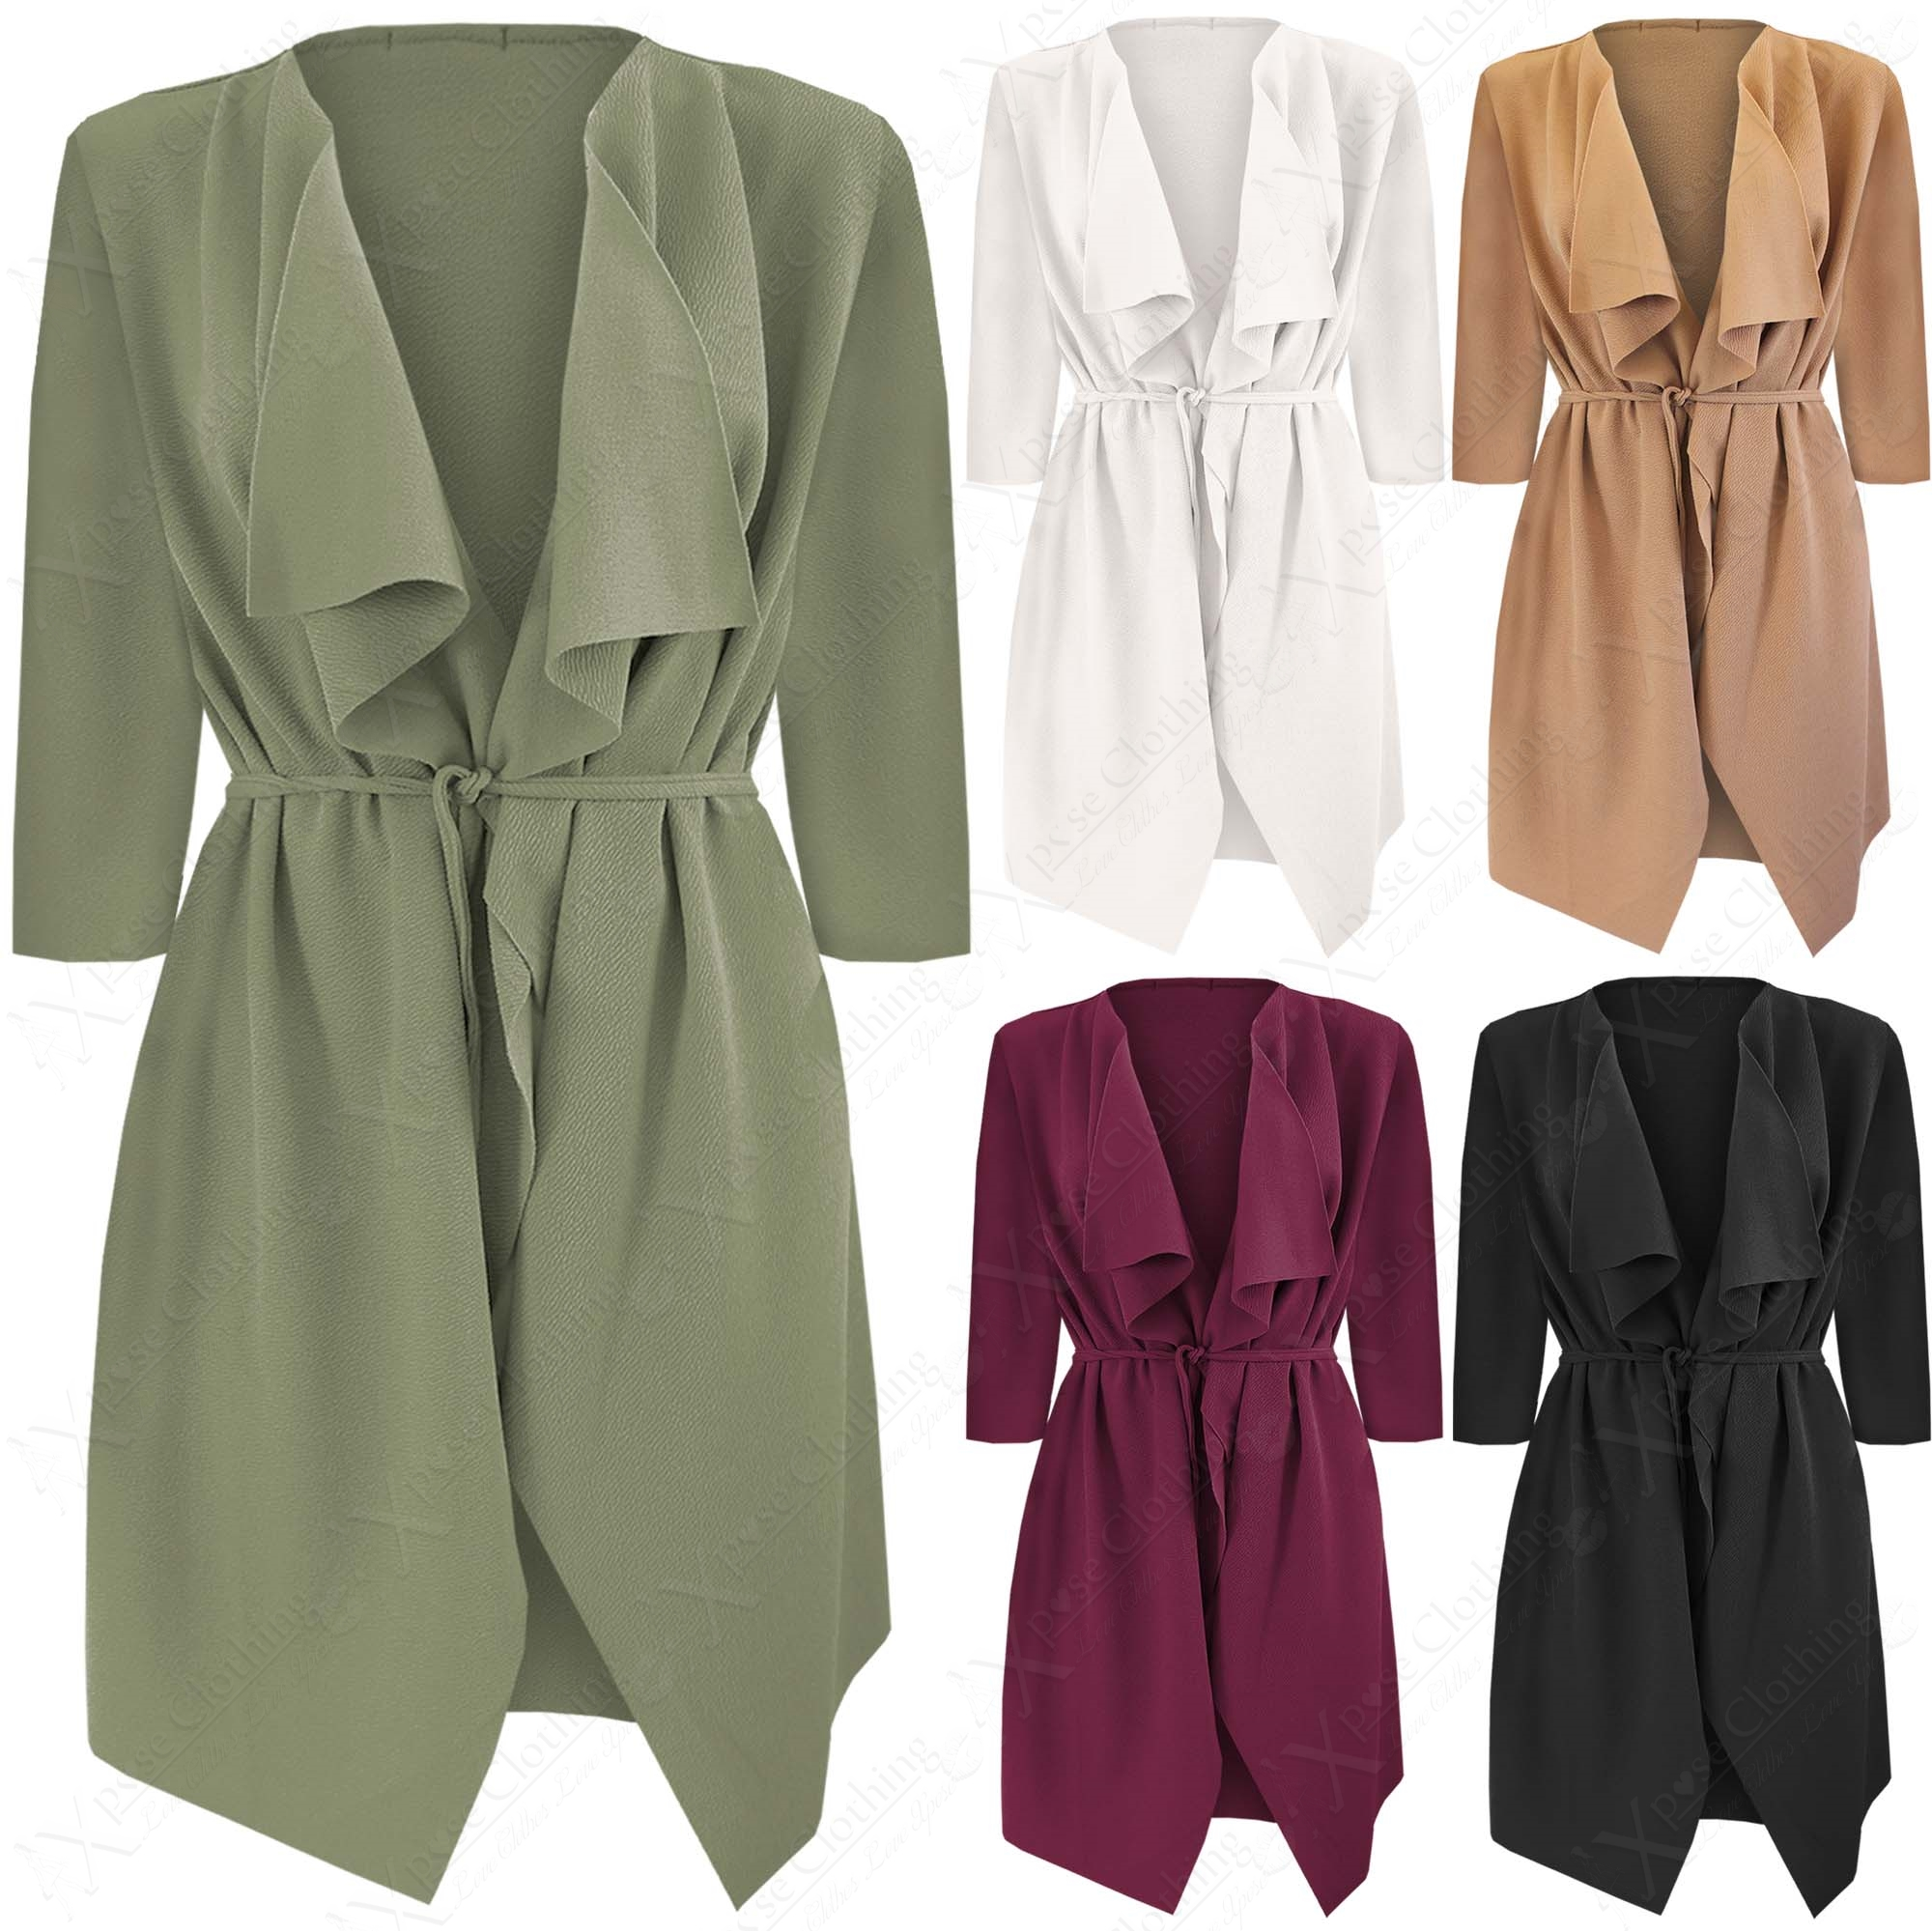 WOMENS 3/4 SLEEVE WATERFALL DUSTER JACKET LADIES BELT COAT LOOK ...